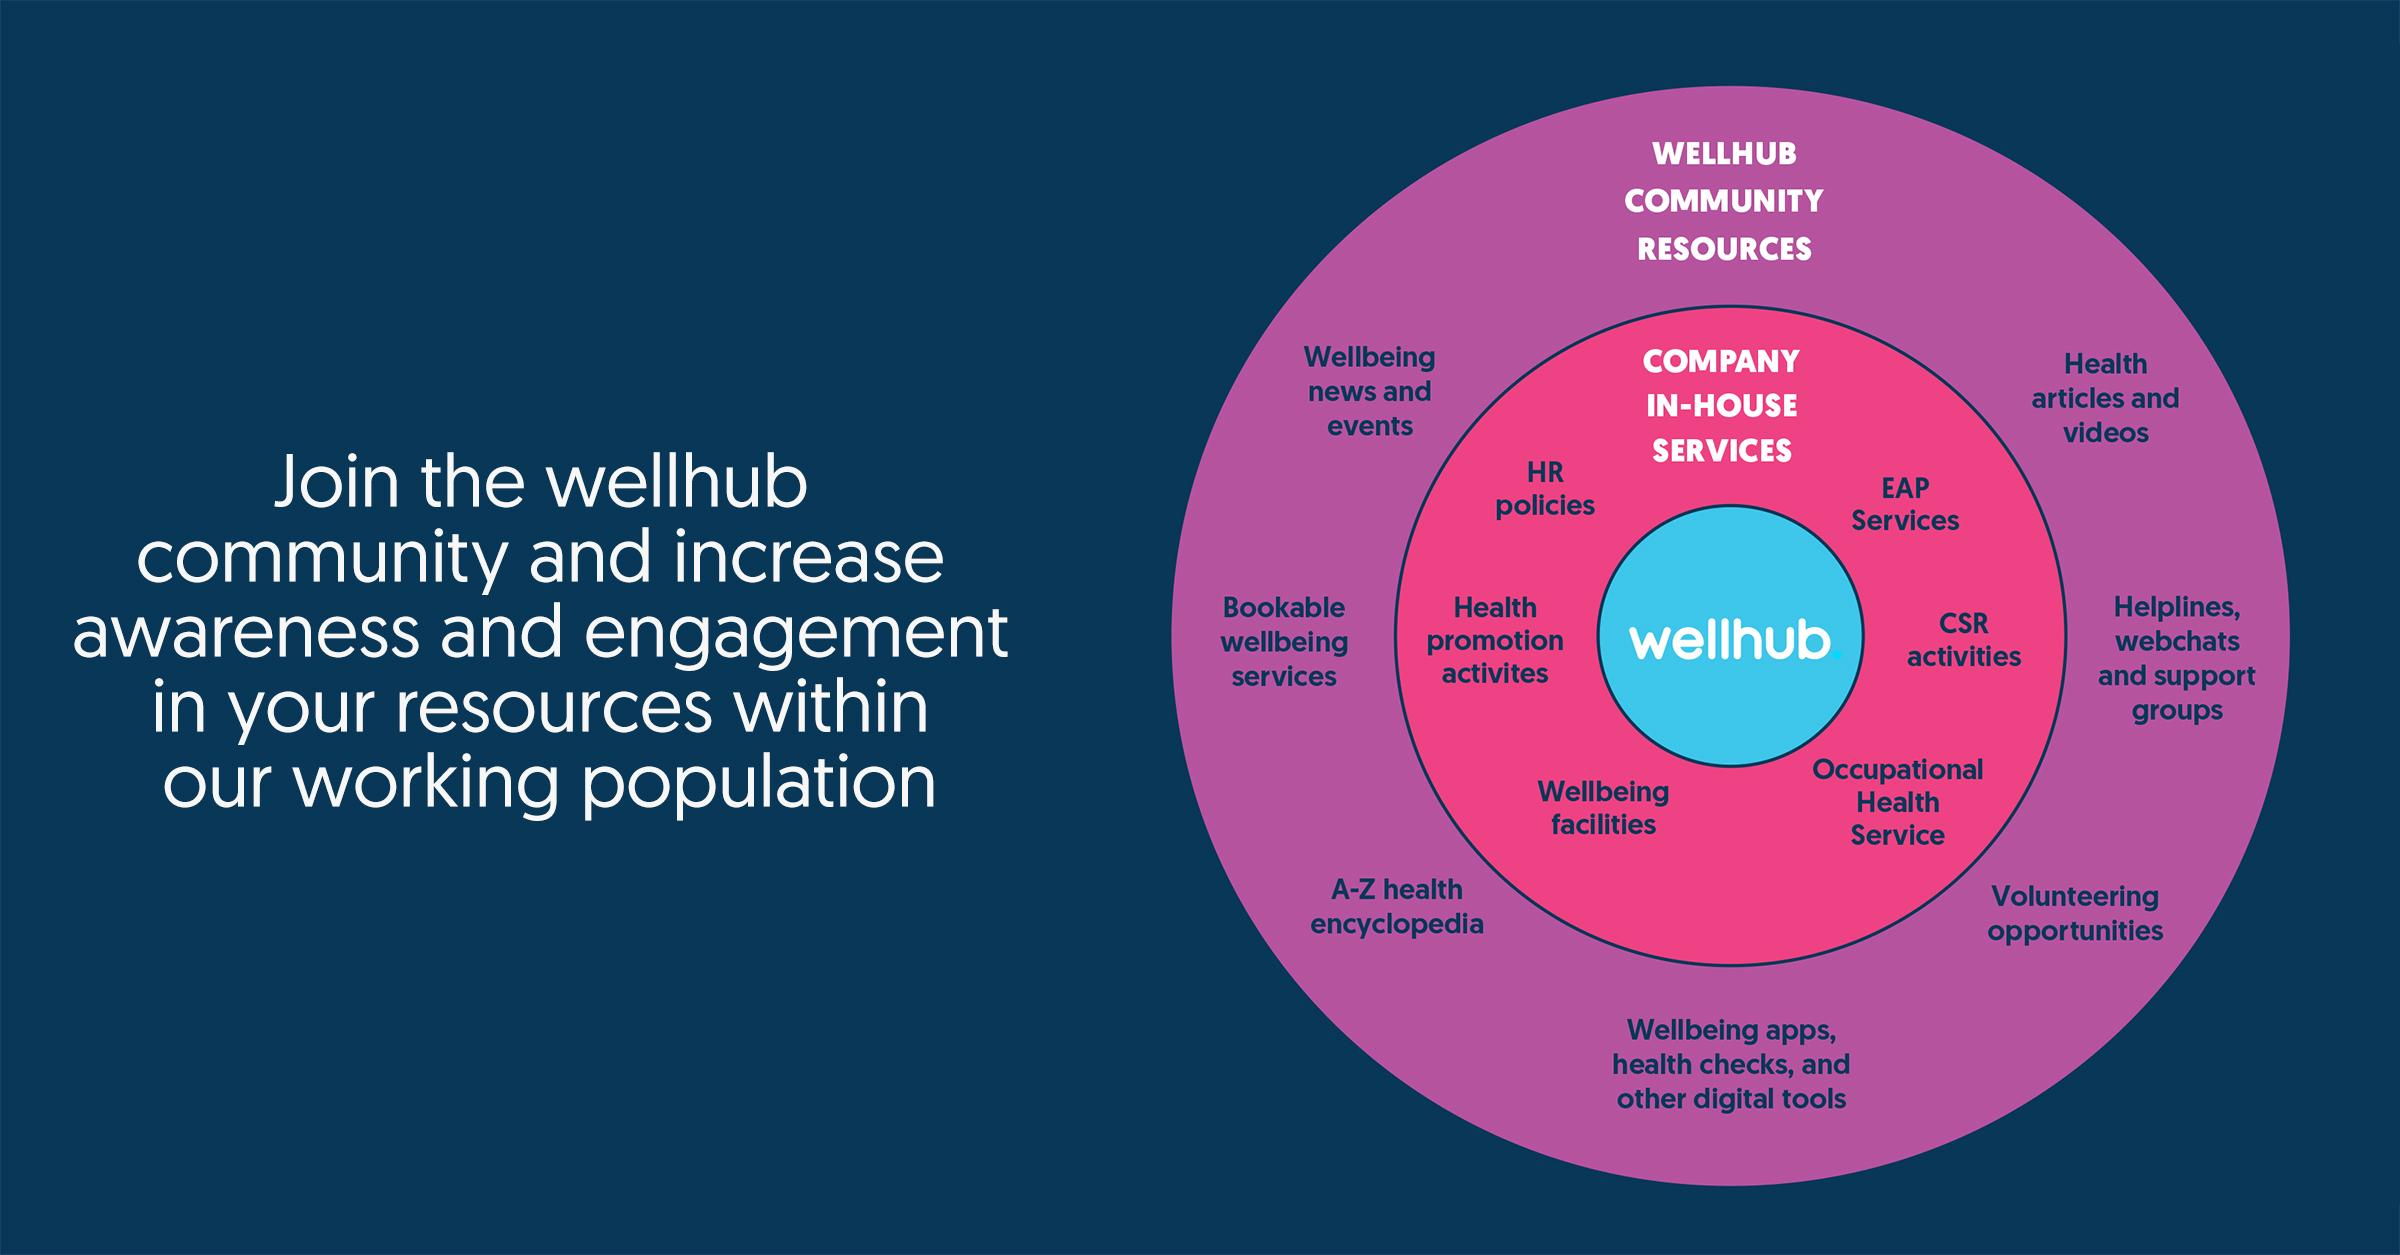 Wellhub community resources